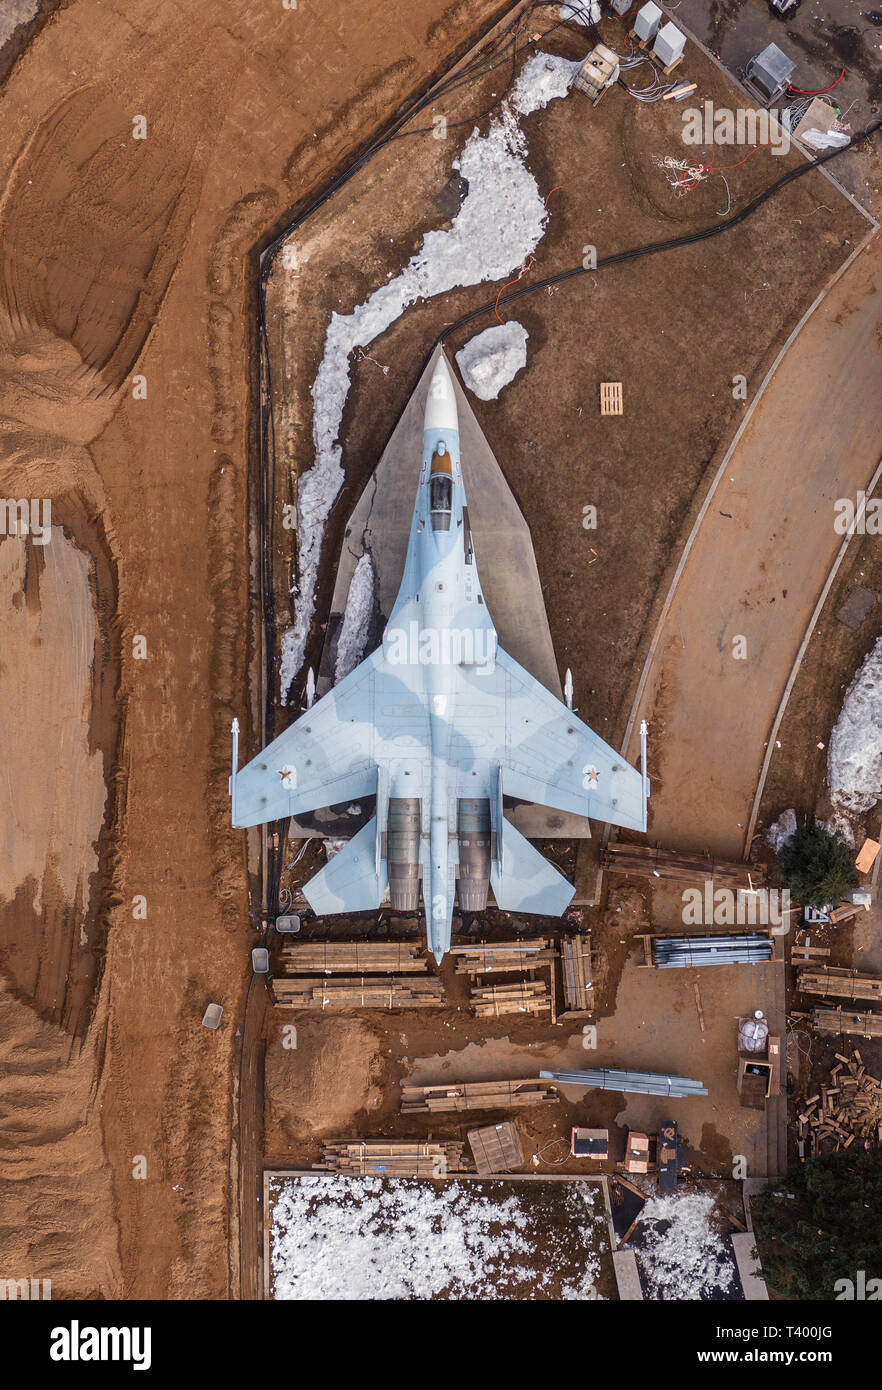 Moscow, April 7, 2019. The Sukhoi Su-27 fighter aircraft stands on a static exposition of the VDNKH. - Stock Image